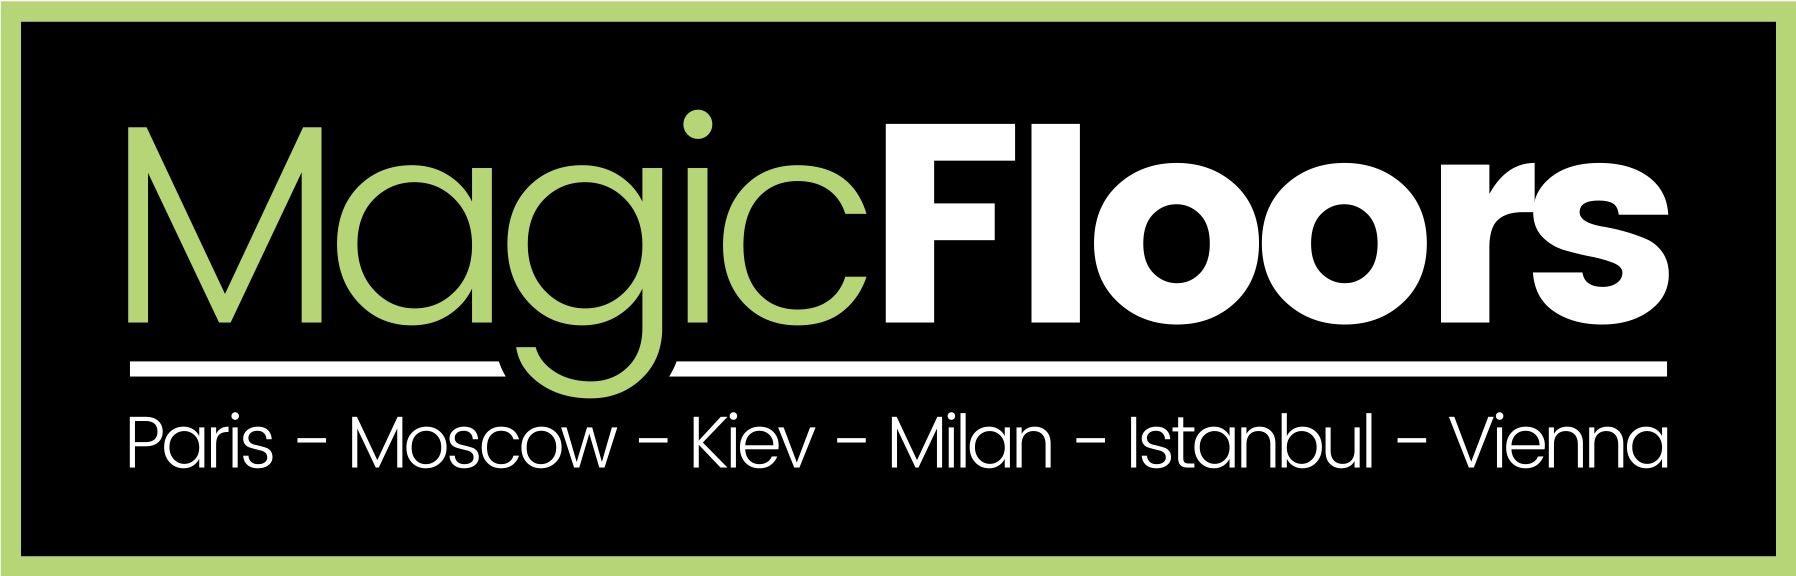 Magic Floors Logo